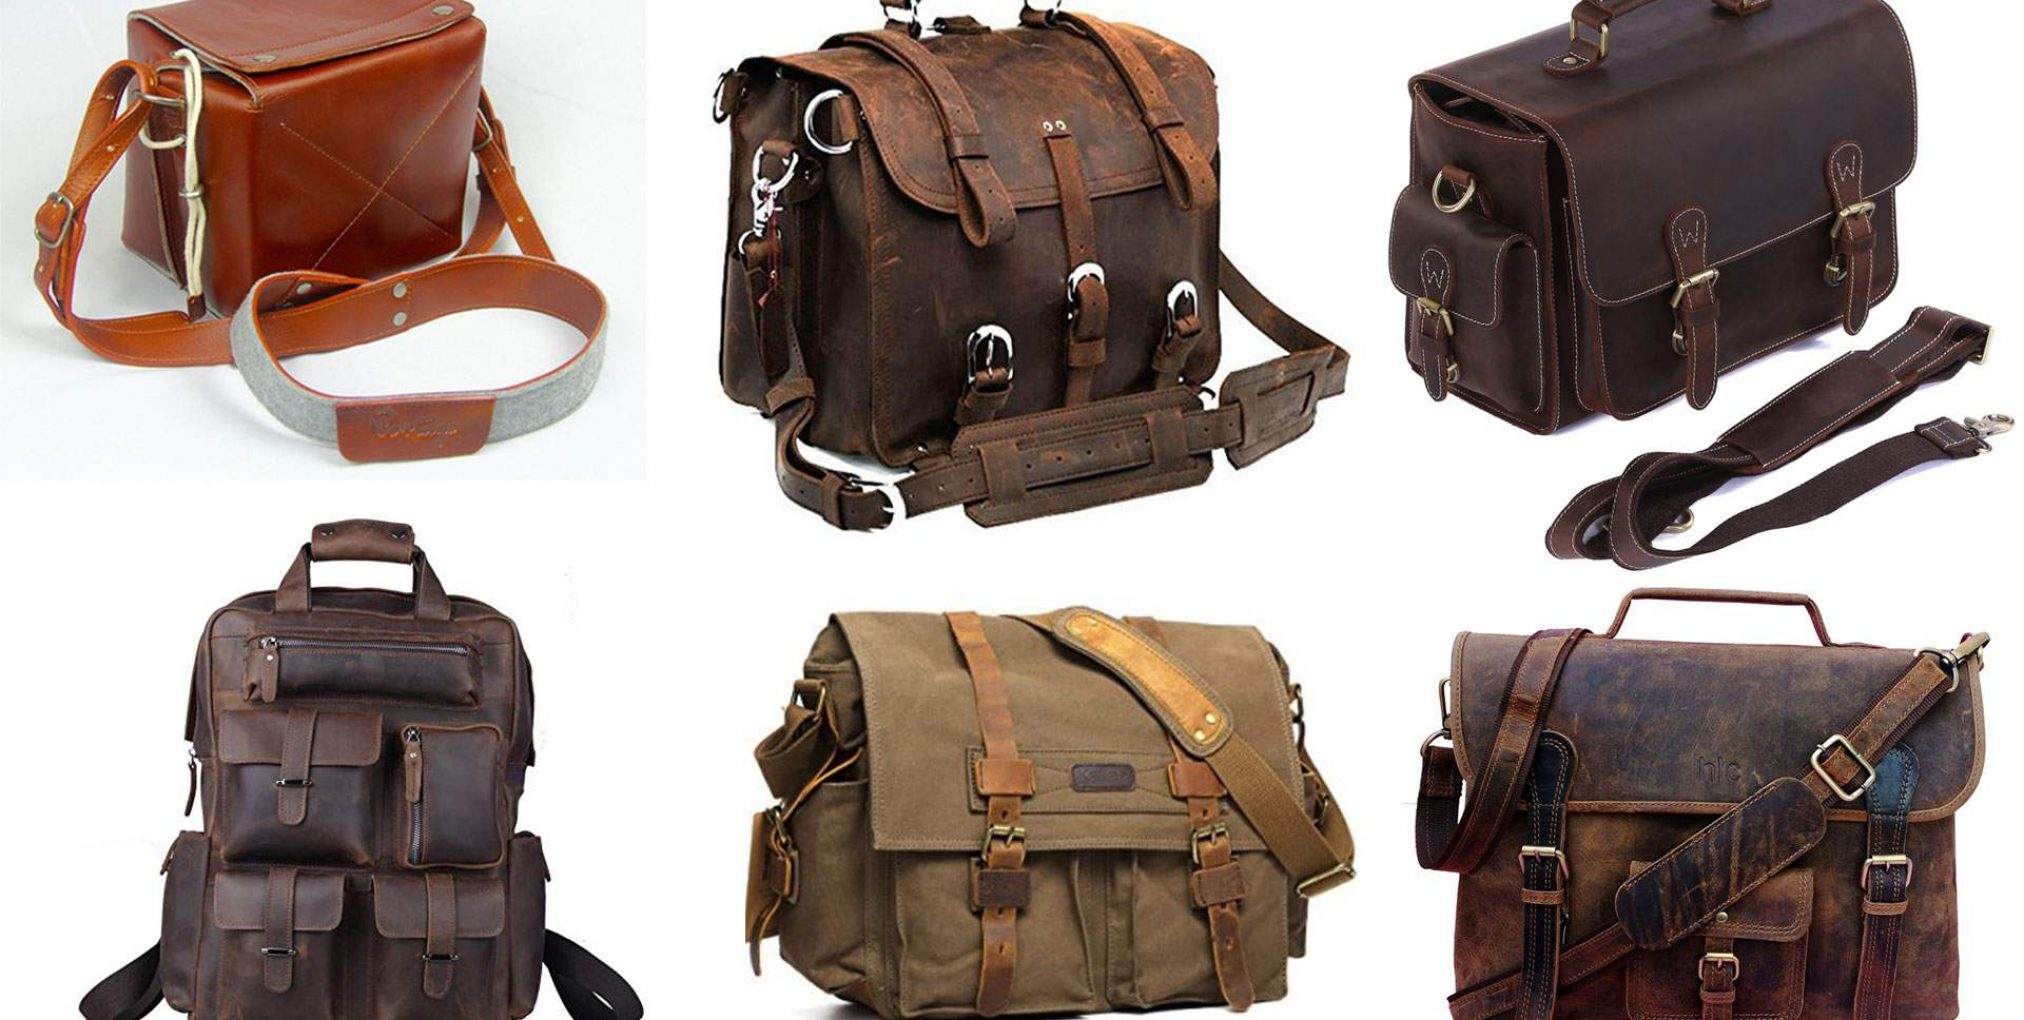 feature-image-leather-camera-bags